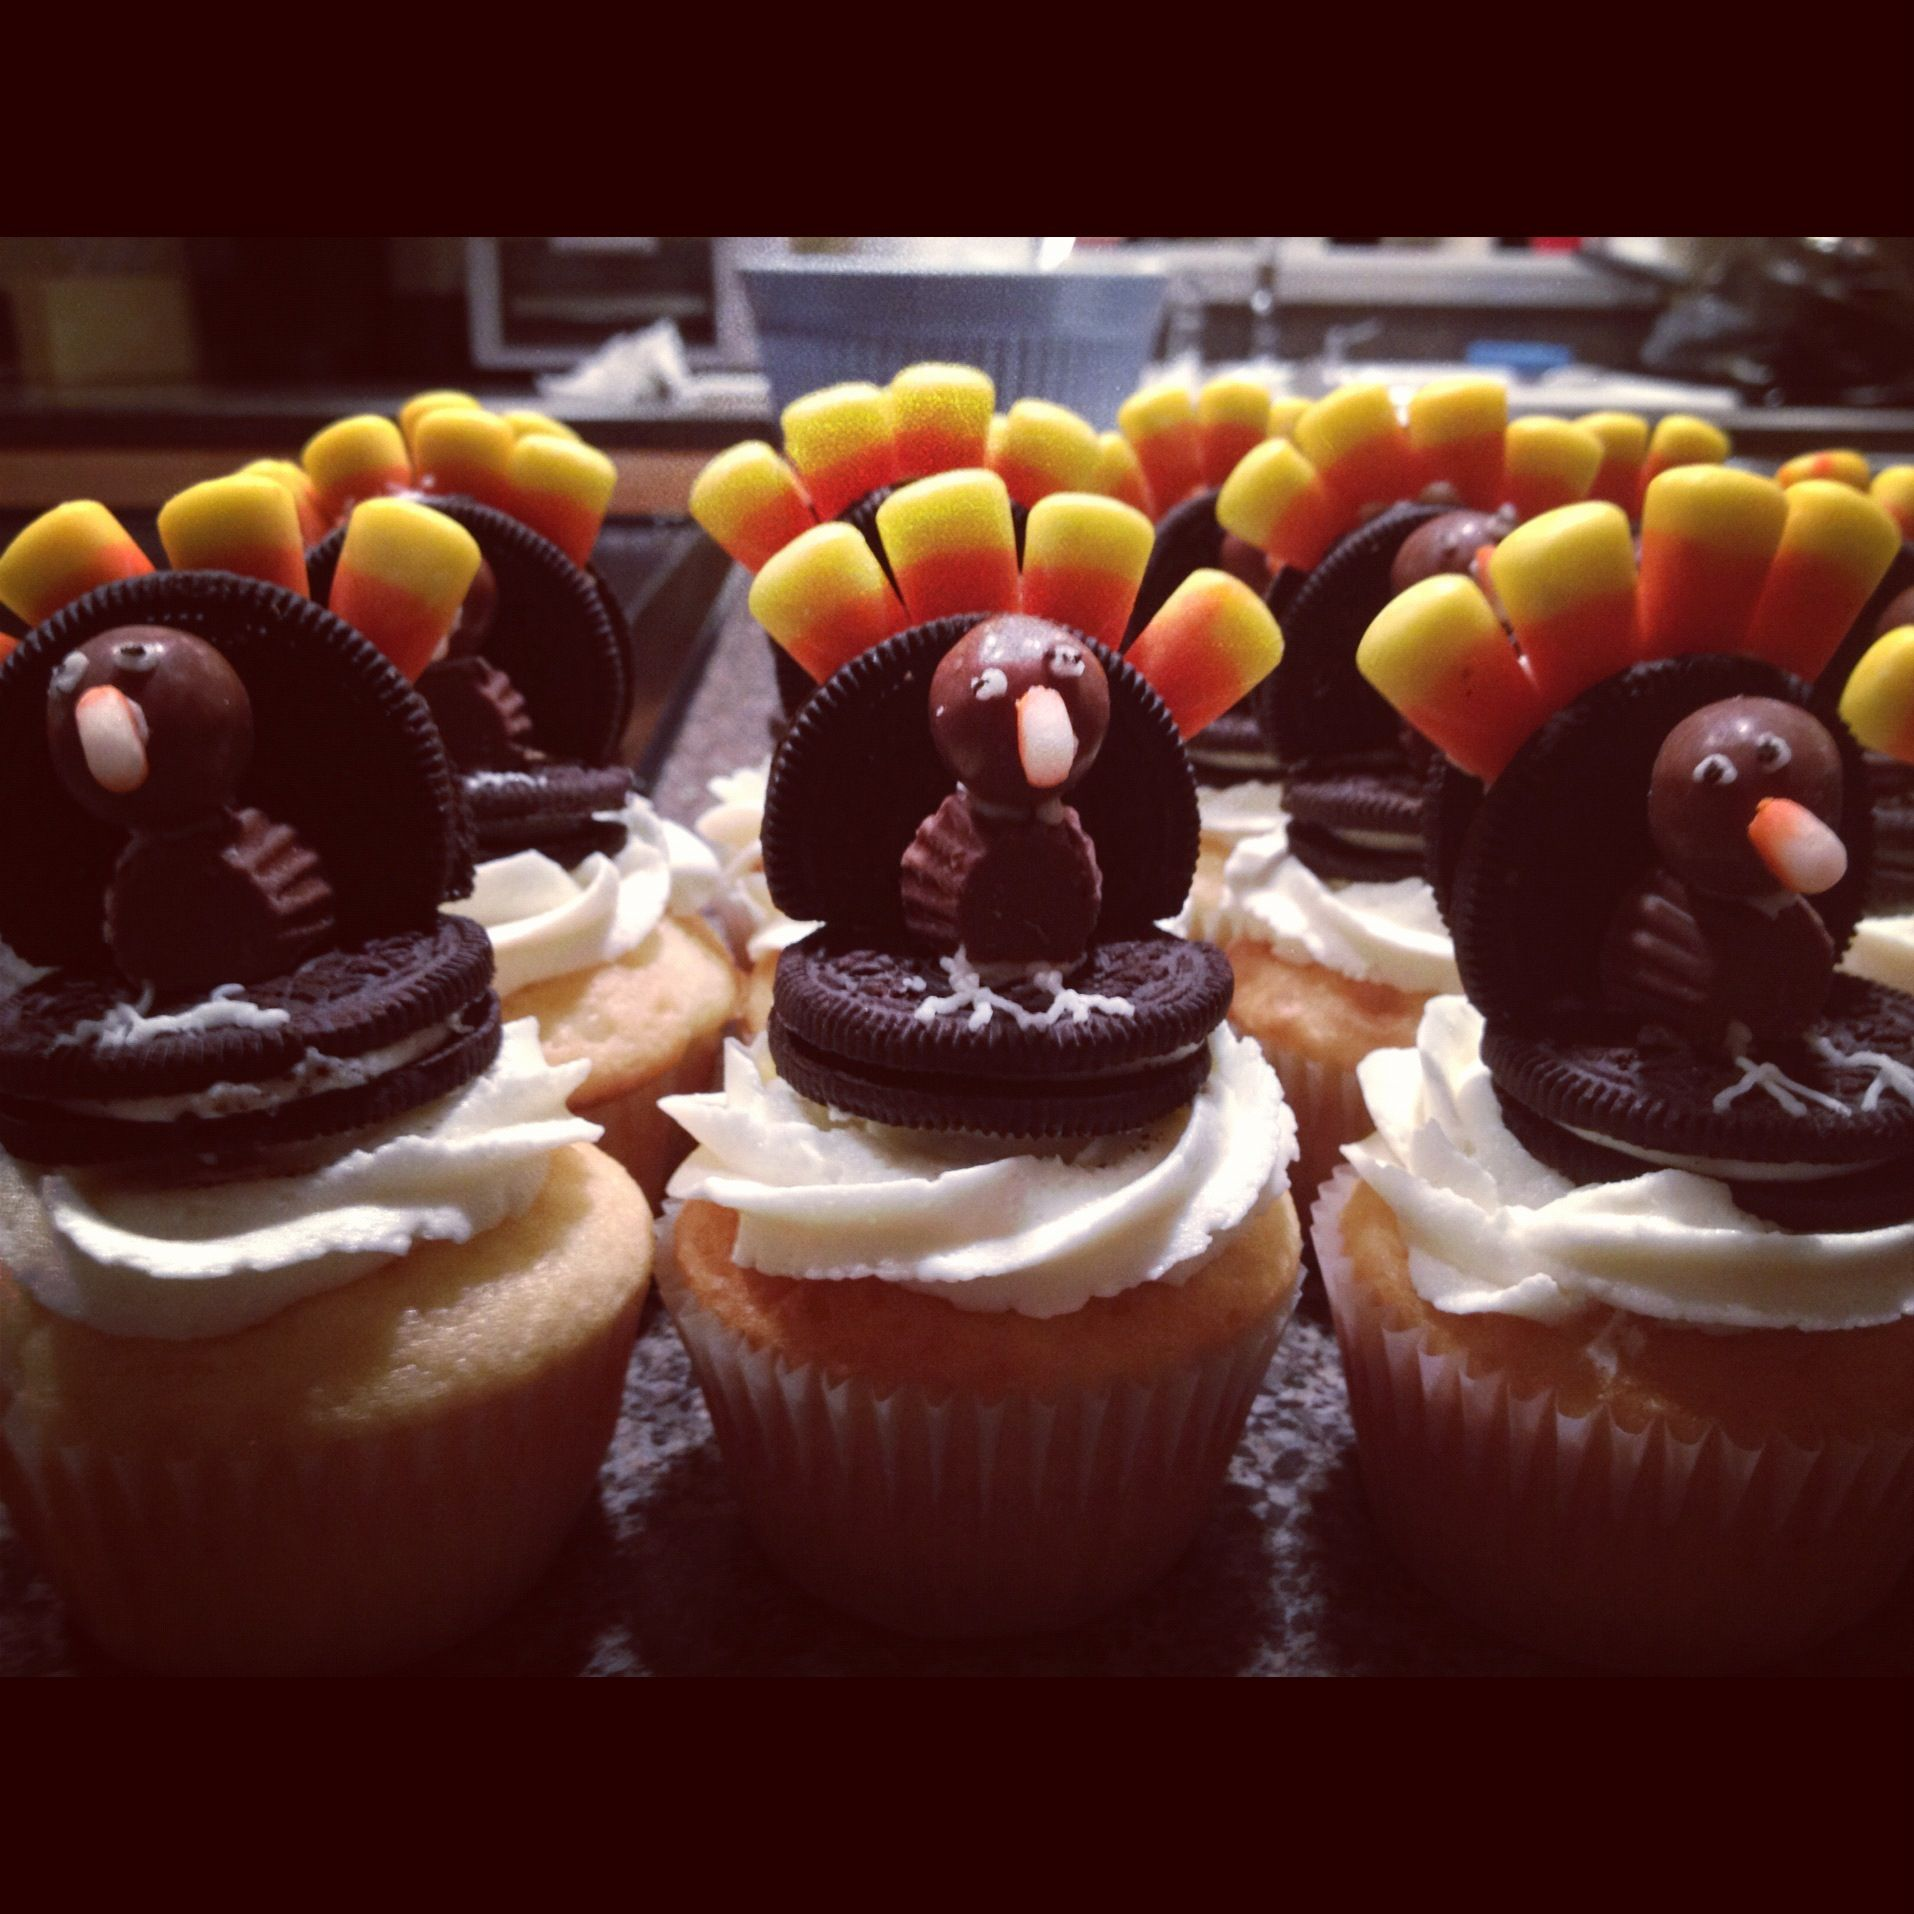 A cupcake with a turkey!